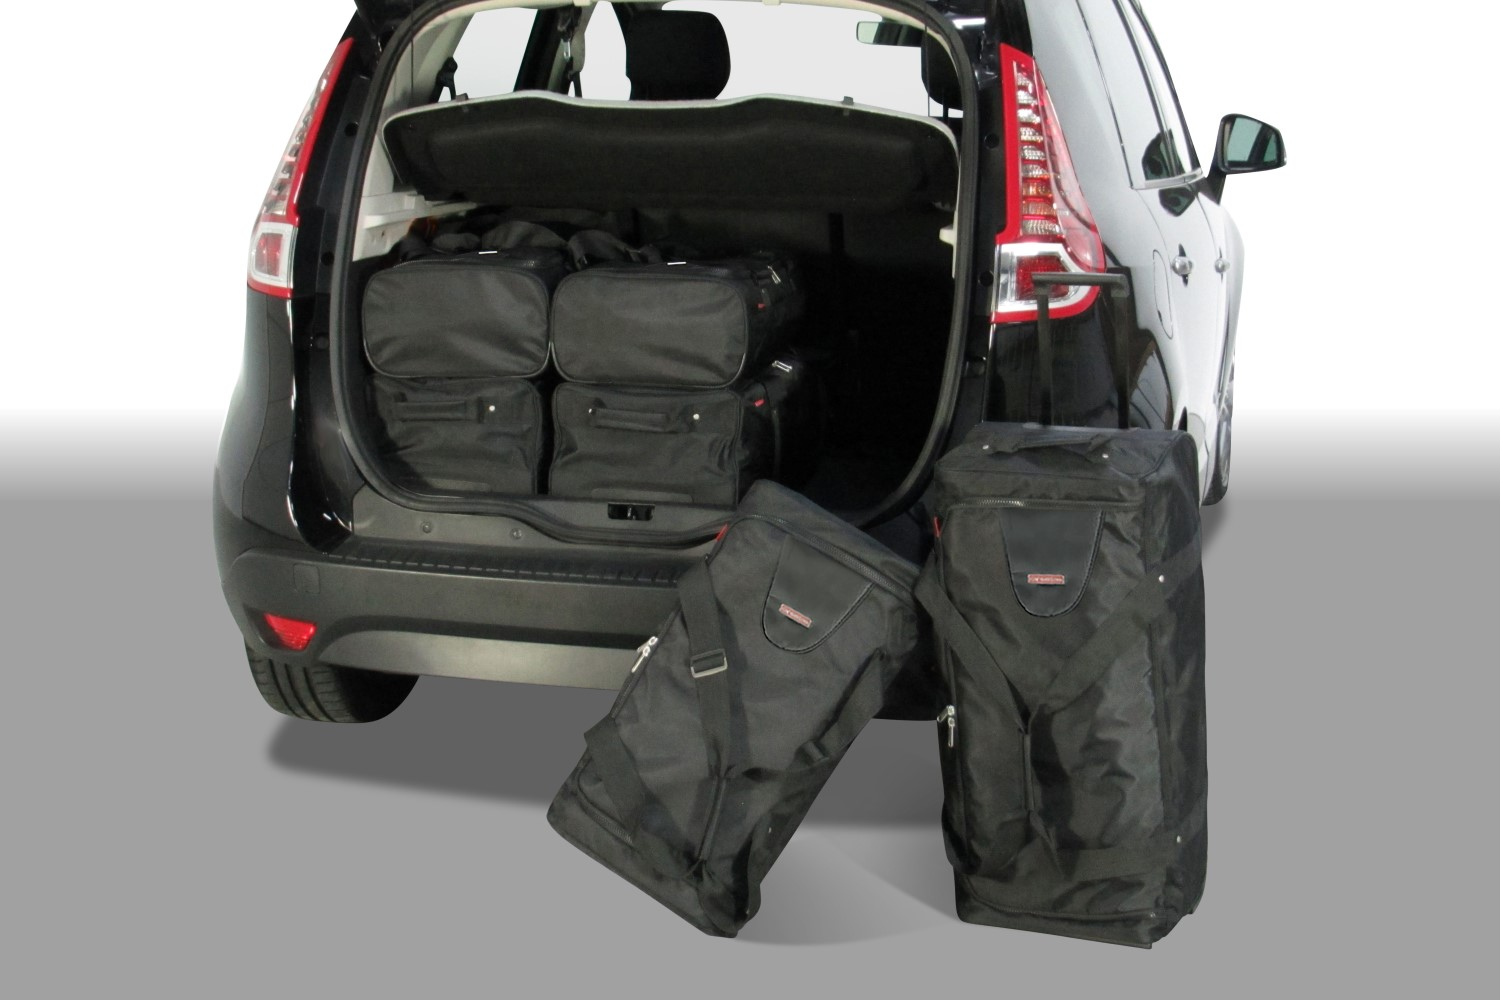 Renault Scénic III 2009-2016 Car-Bags.com travel bag set (1)